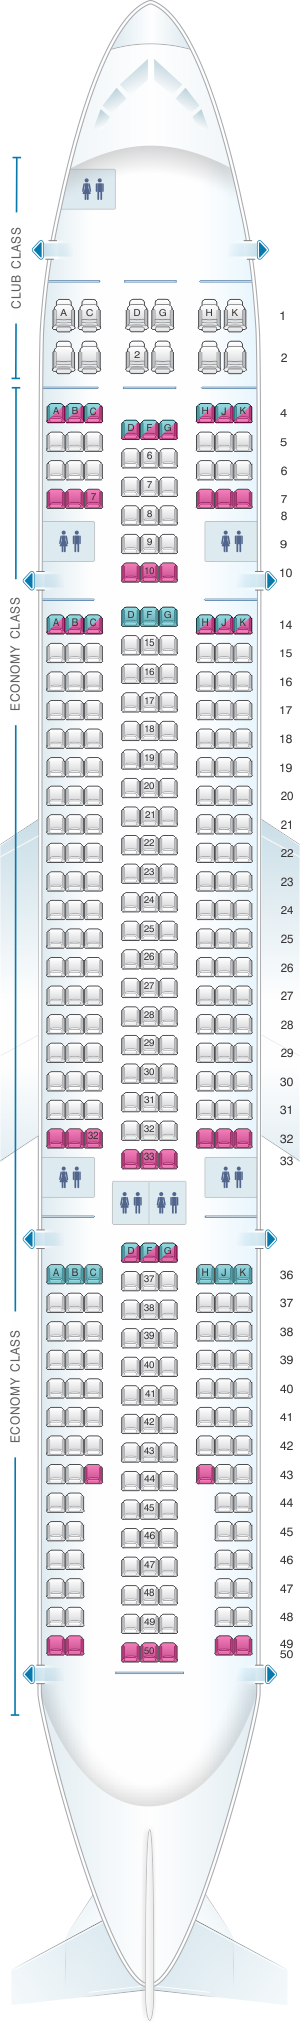 Seat map for Air Transat Airbus A330 200